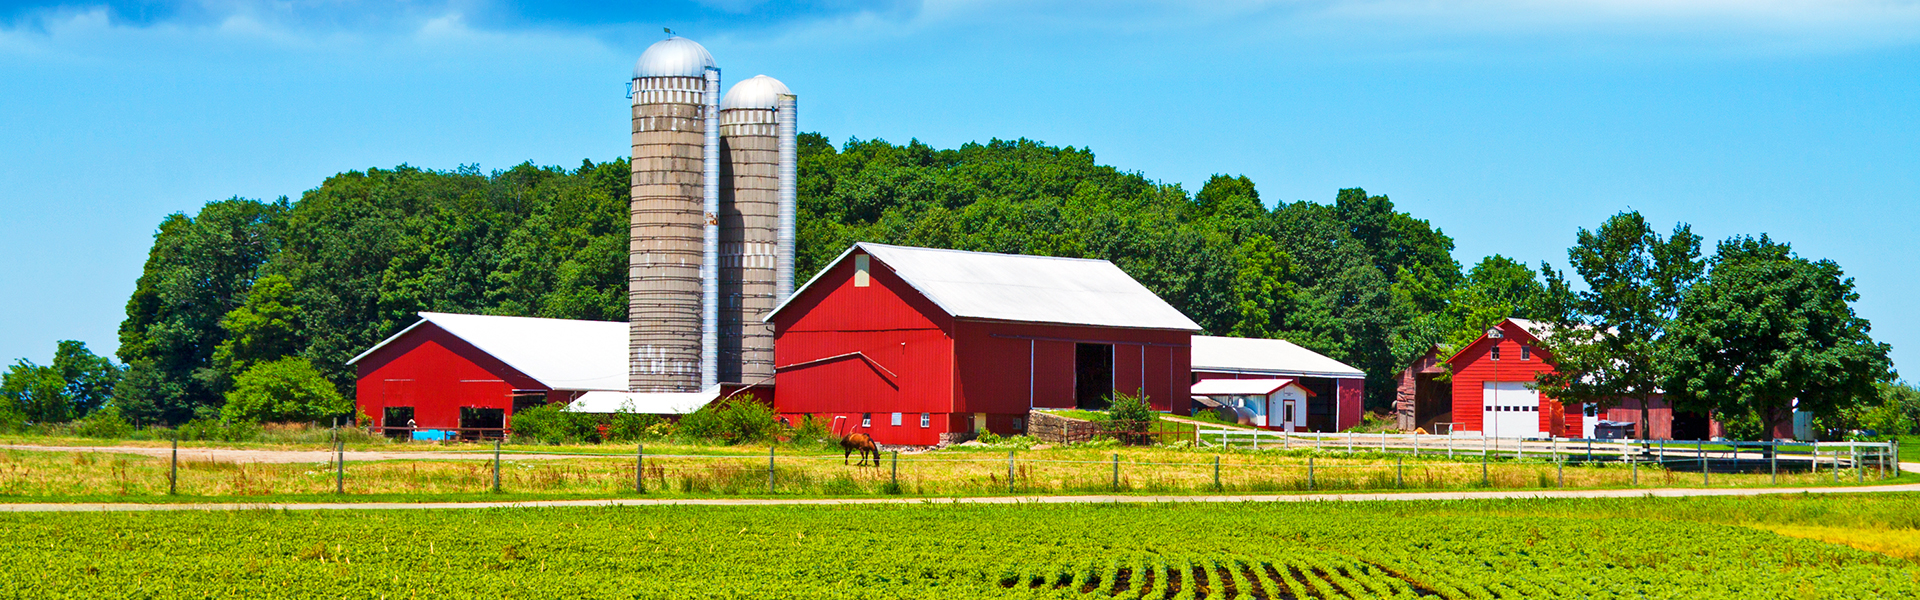 Farm Insurance in Jamestown, Devils Lake ND, West Fargo, Fargo ND